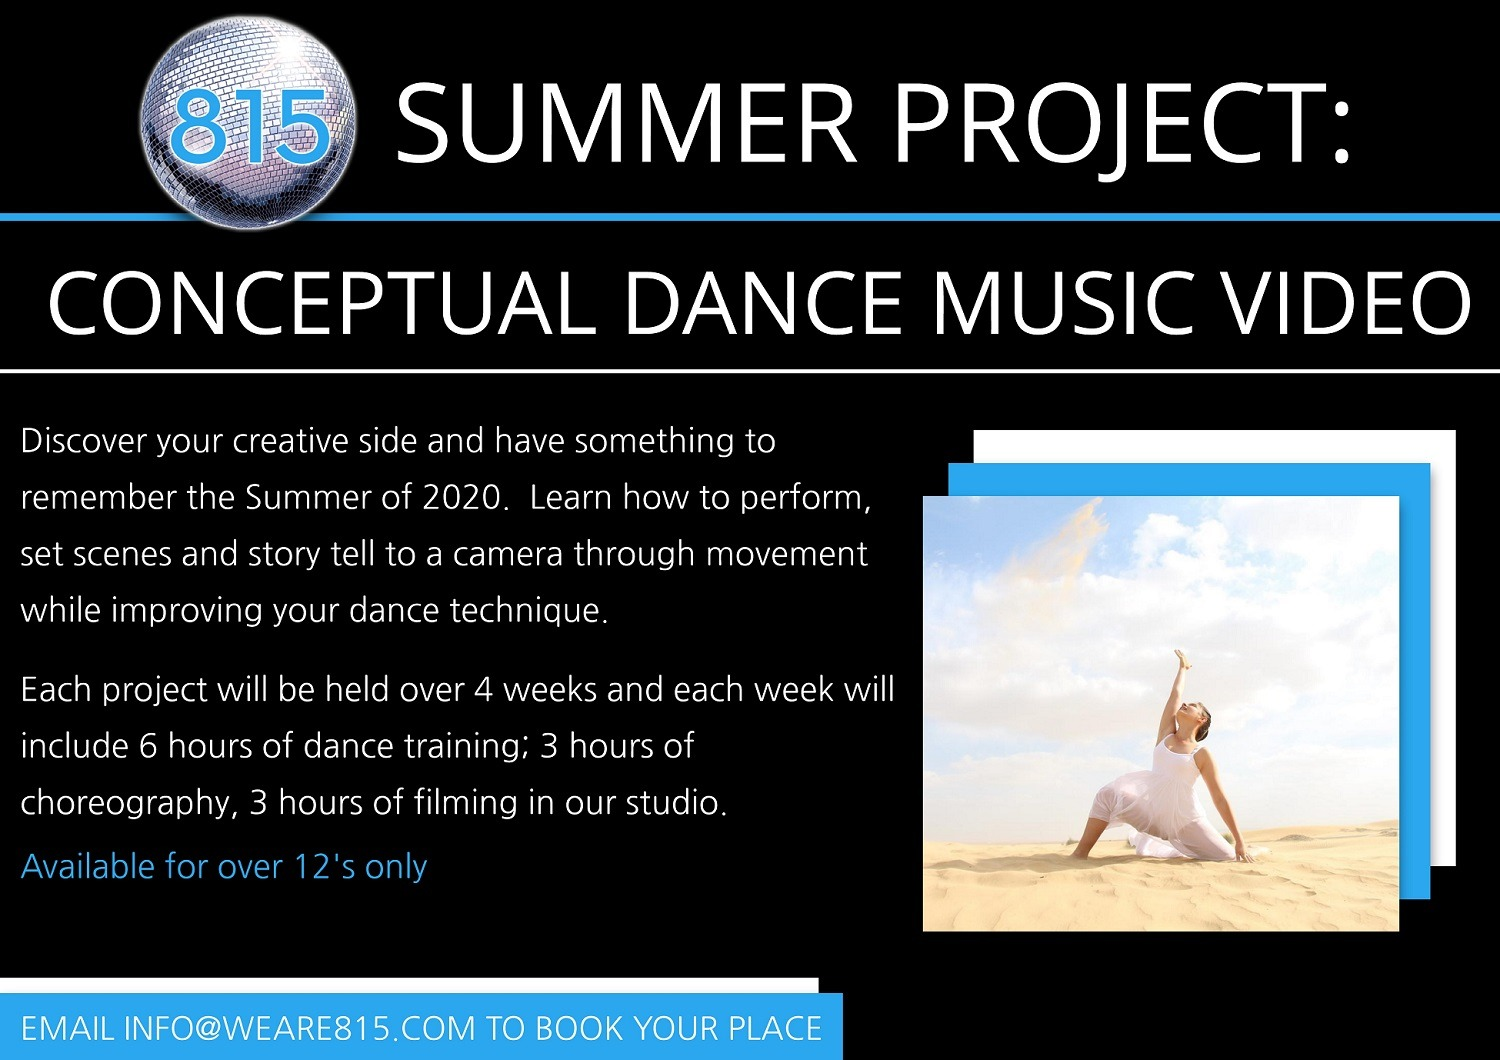 Conceptual Dance Summer Project in Dubai Silicon Oasis at 815 Dance & Performing Arts